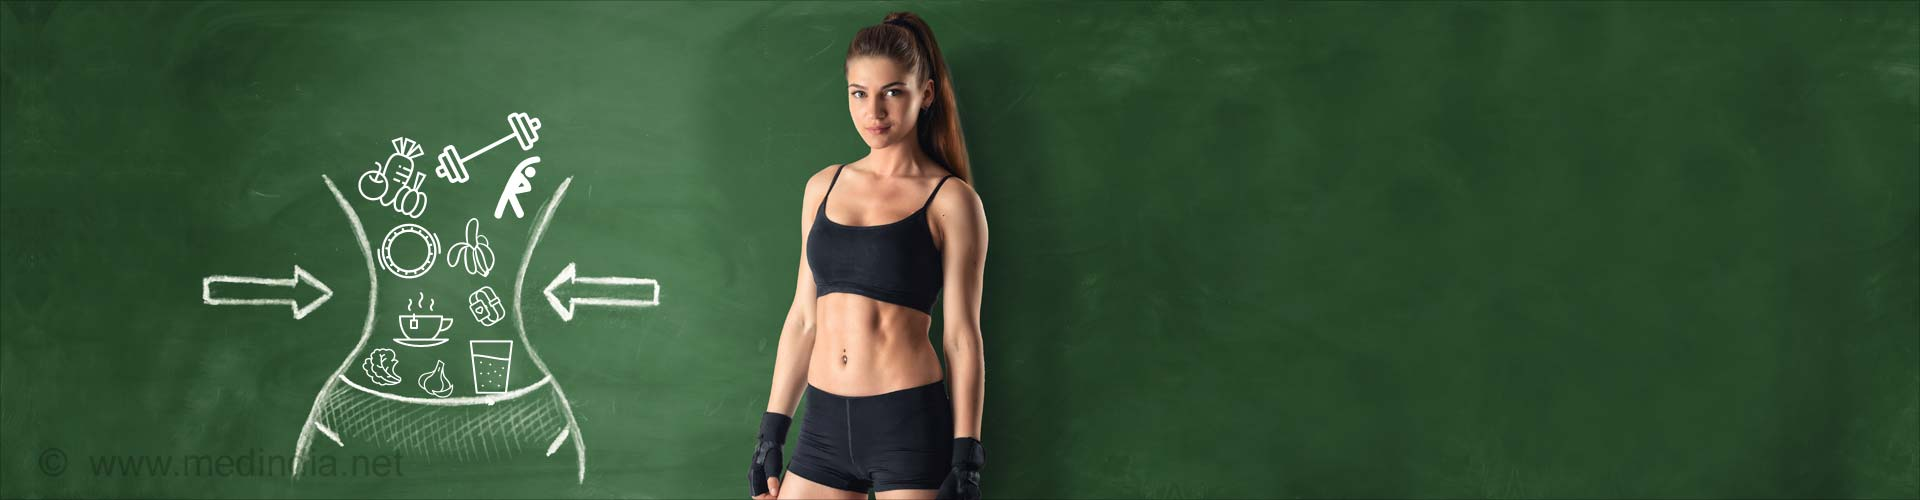 Speed up Your Metabolism For Weight Loss